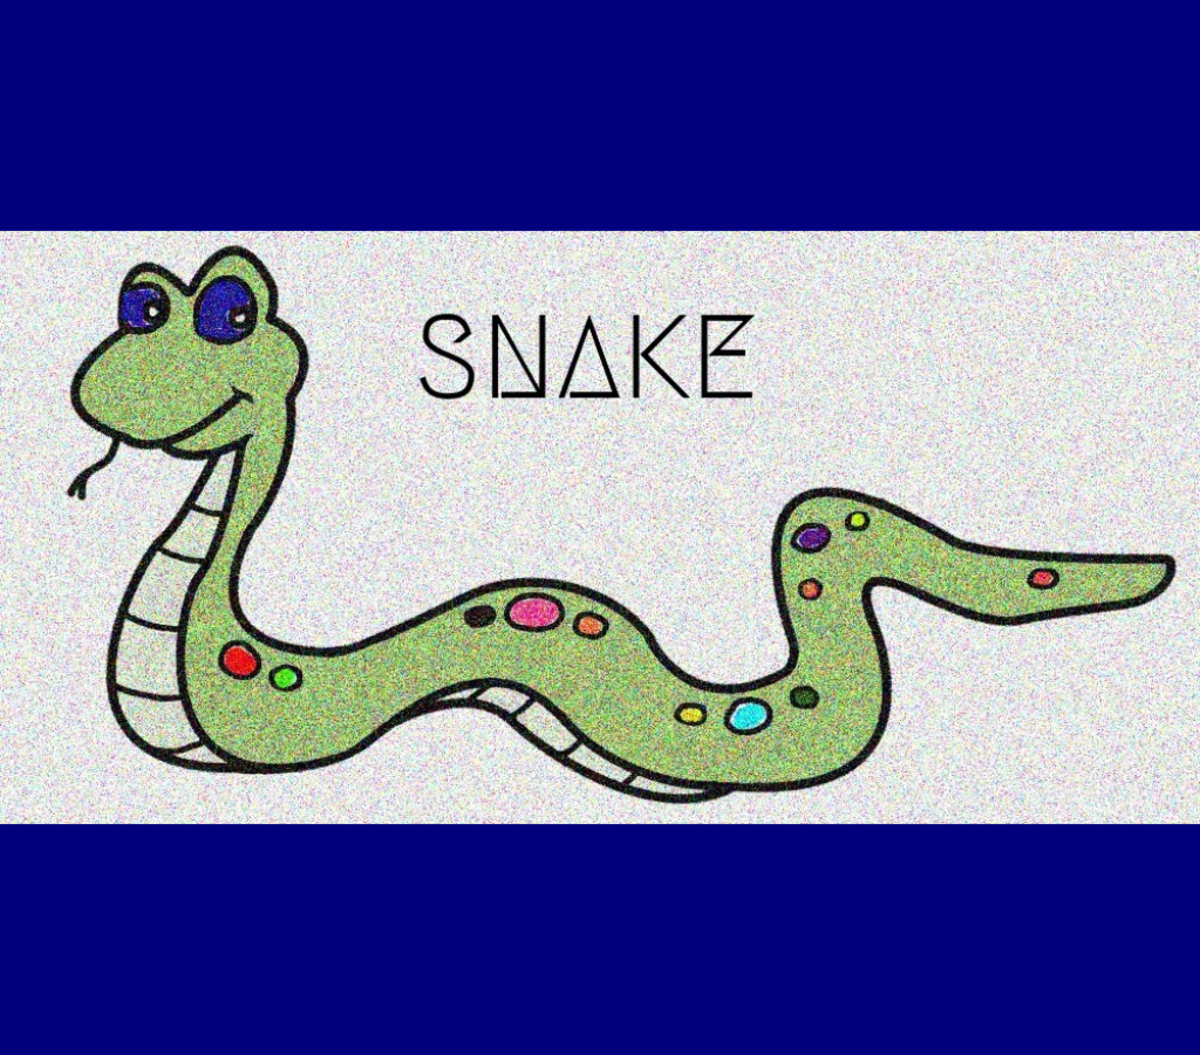 Year of the Snake 2021